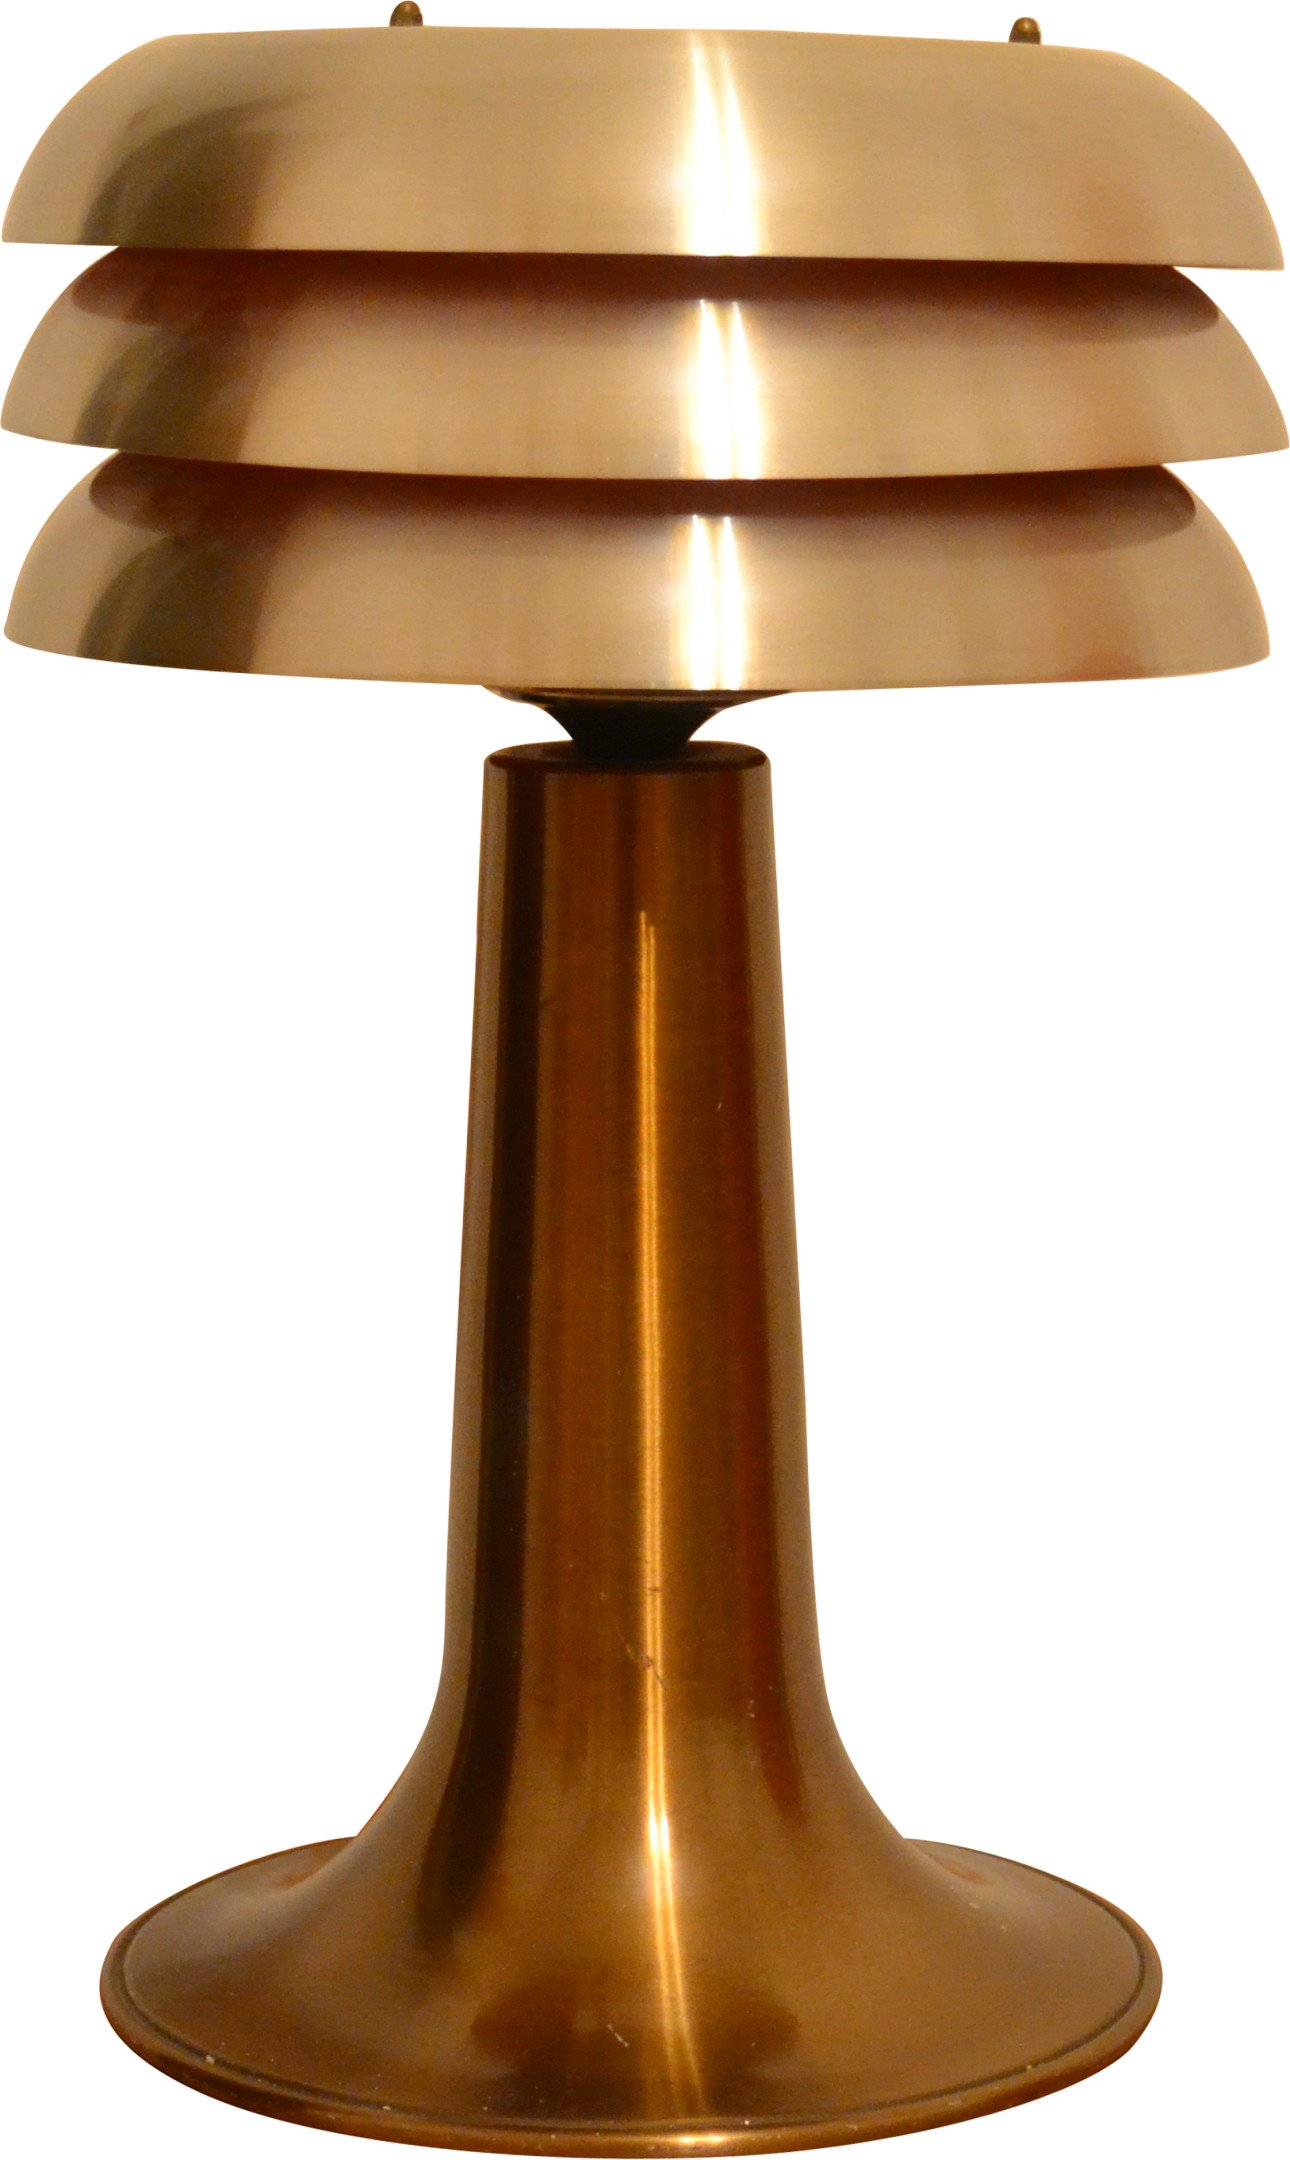 Bn-25 Table Lamp by H.A. Jakobsson, AB Markaryd, 1960s